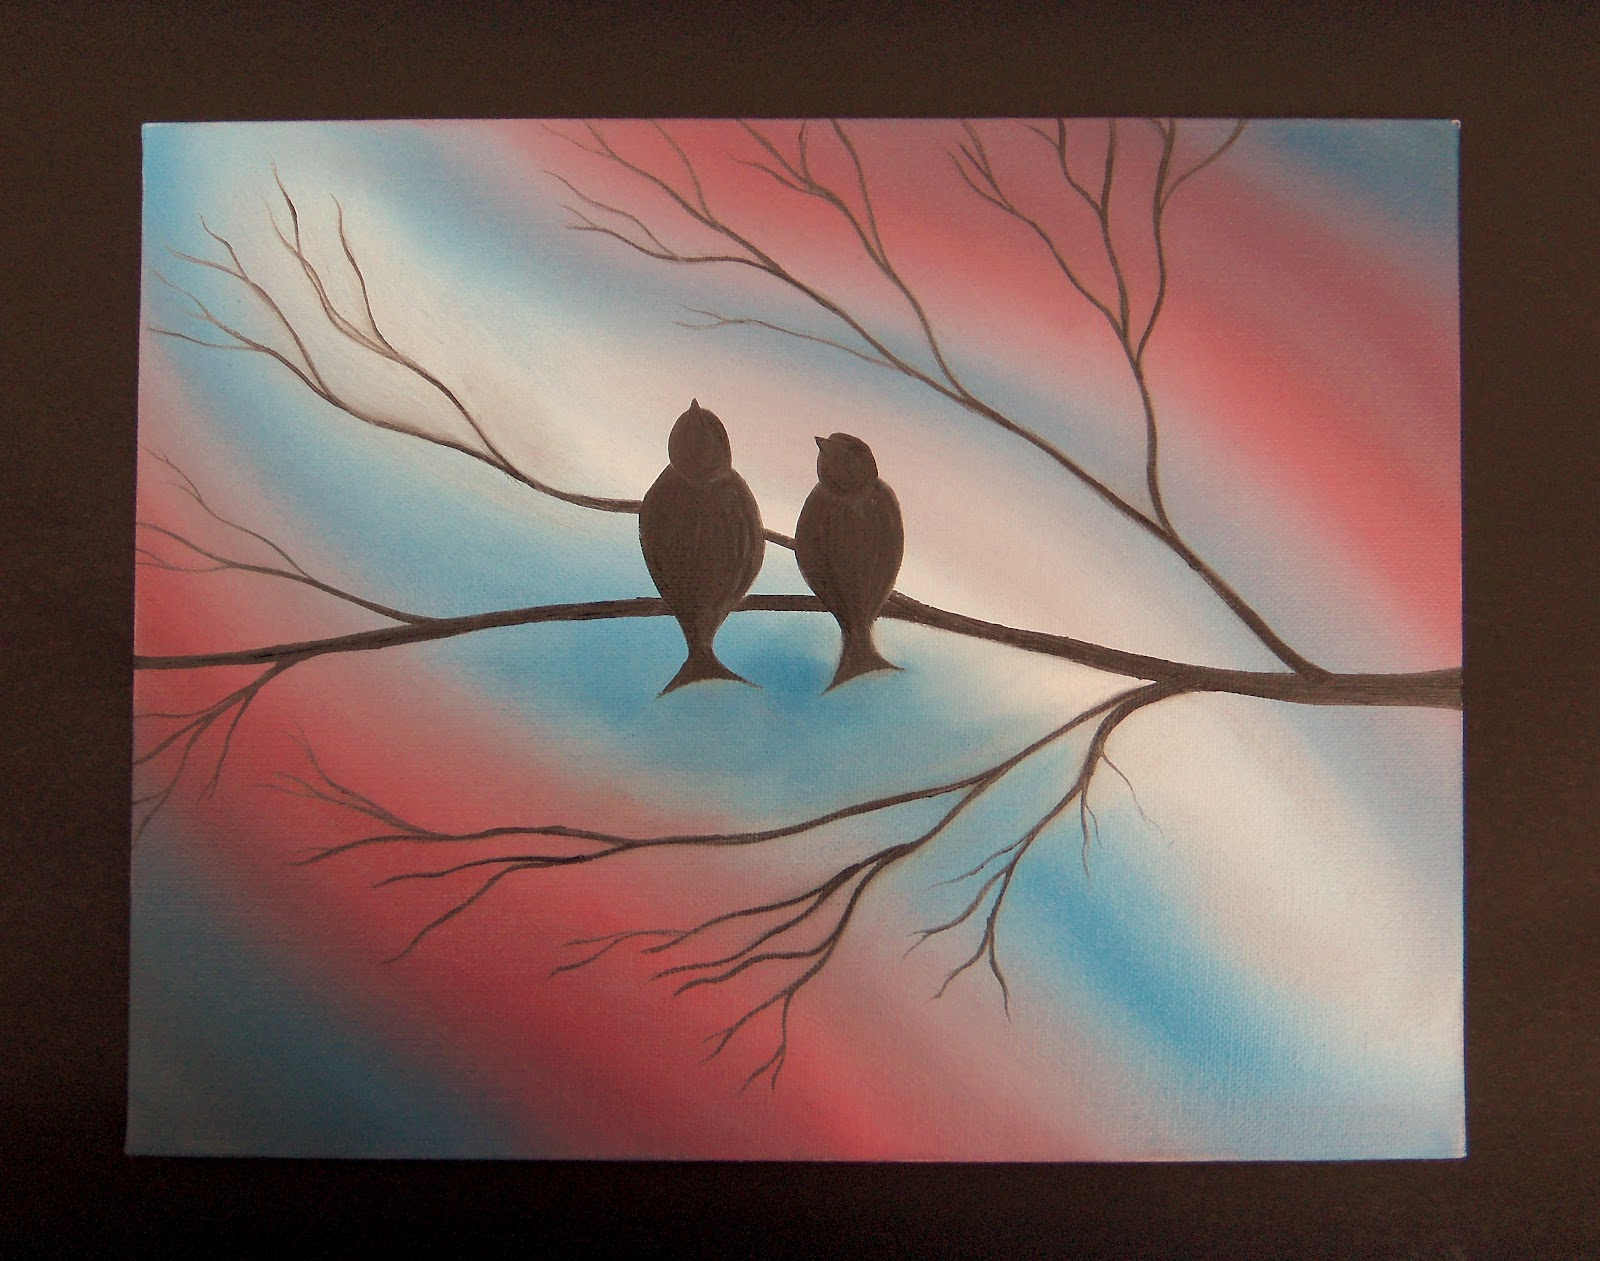 Abstract Bird Oil Painting Red White And Blue On Canvas 11 X 14 Free Birds